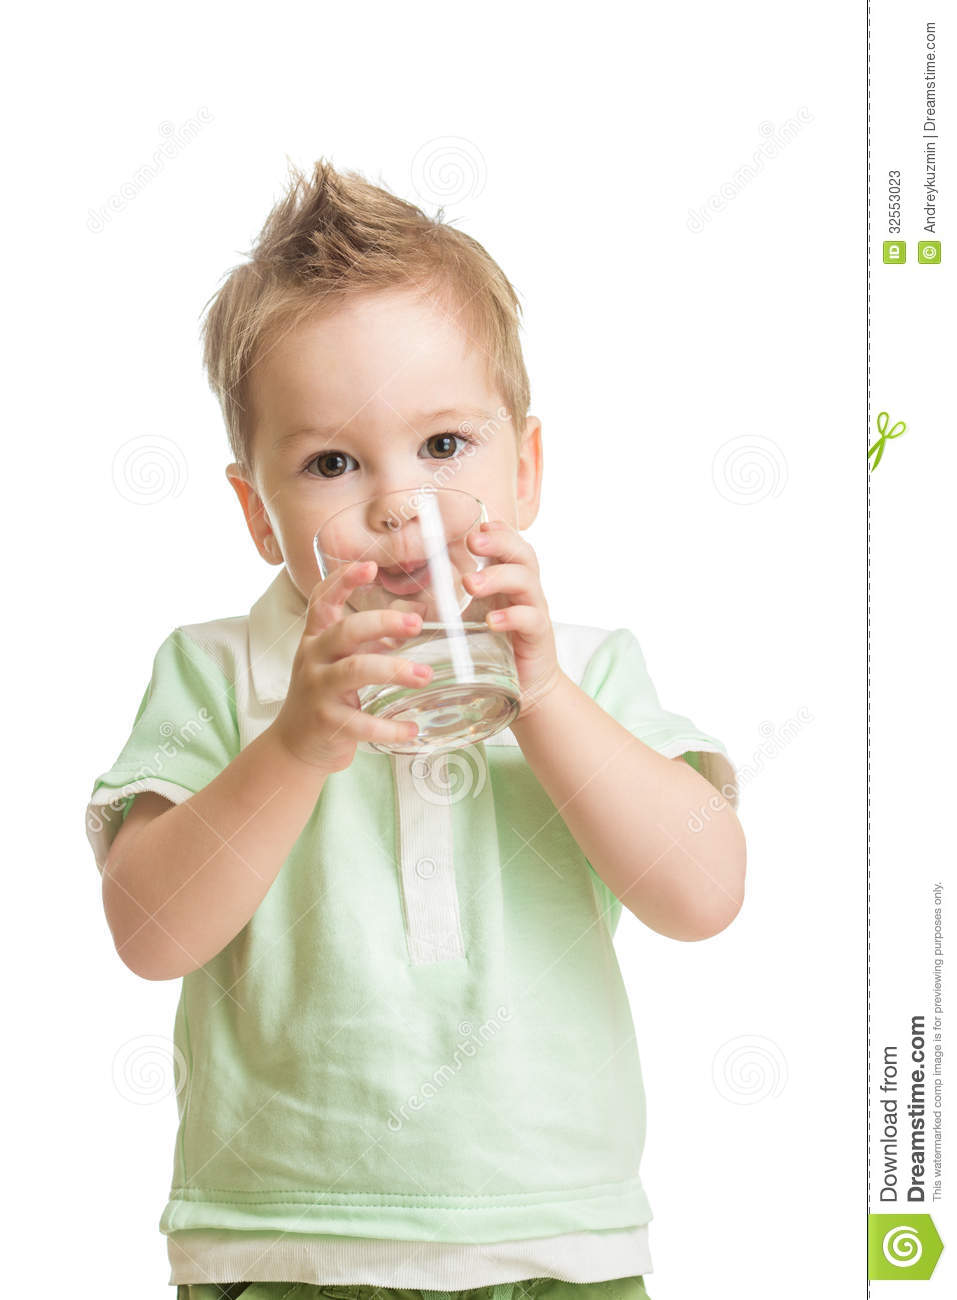 Baby Drinking Water From Glass Stock Image Image 32553023